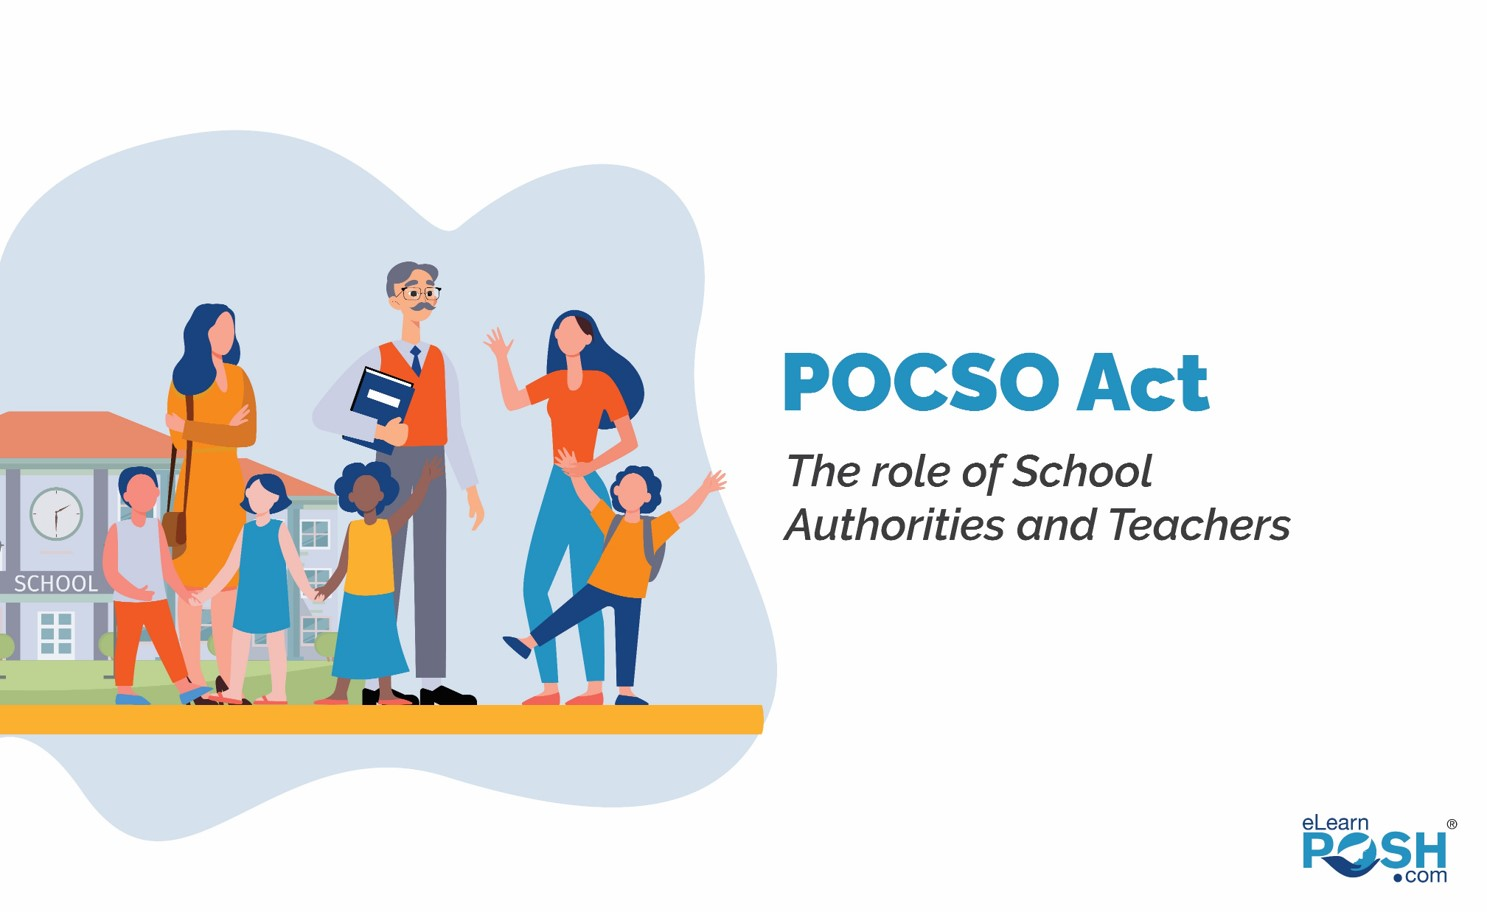 POCSO Act, 2012: The role of School Authorities and Teachers